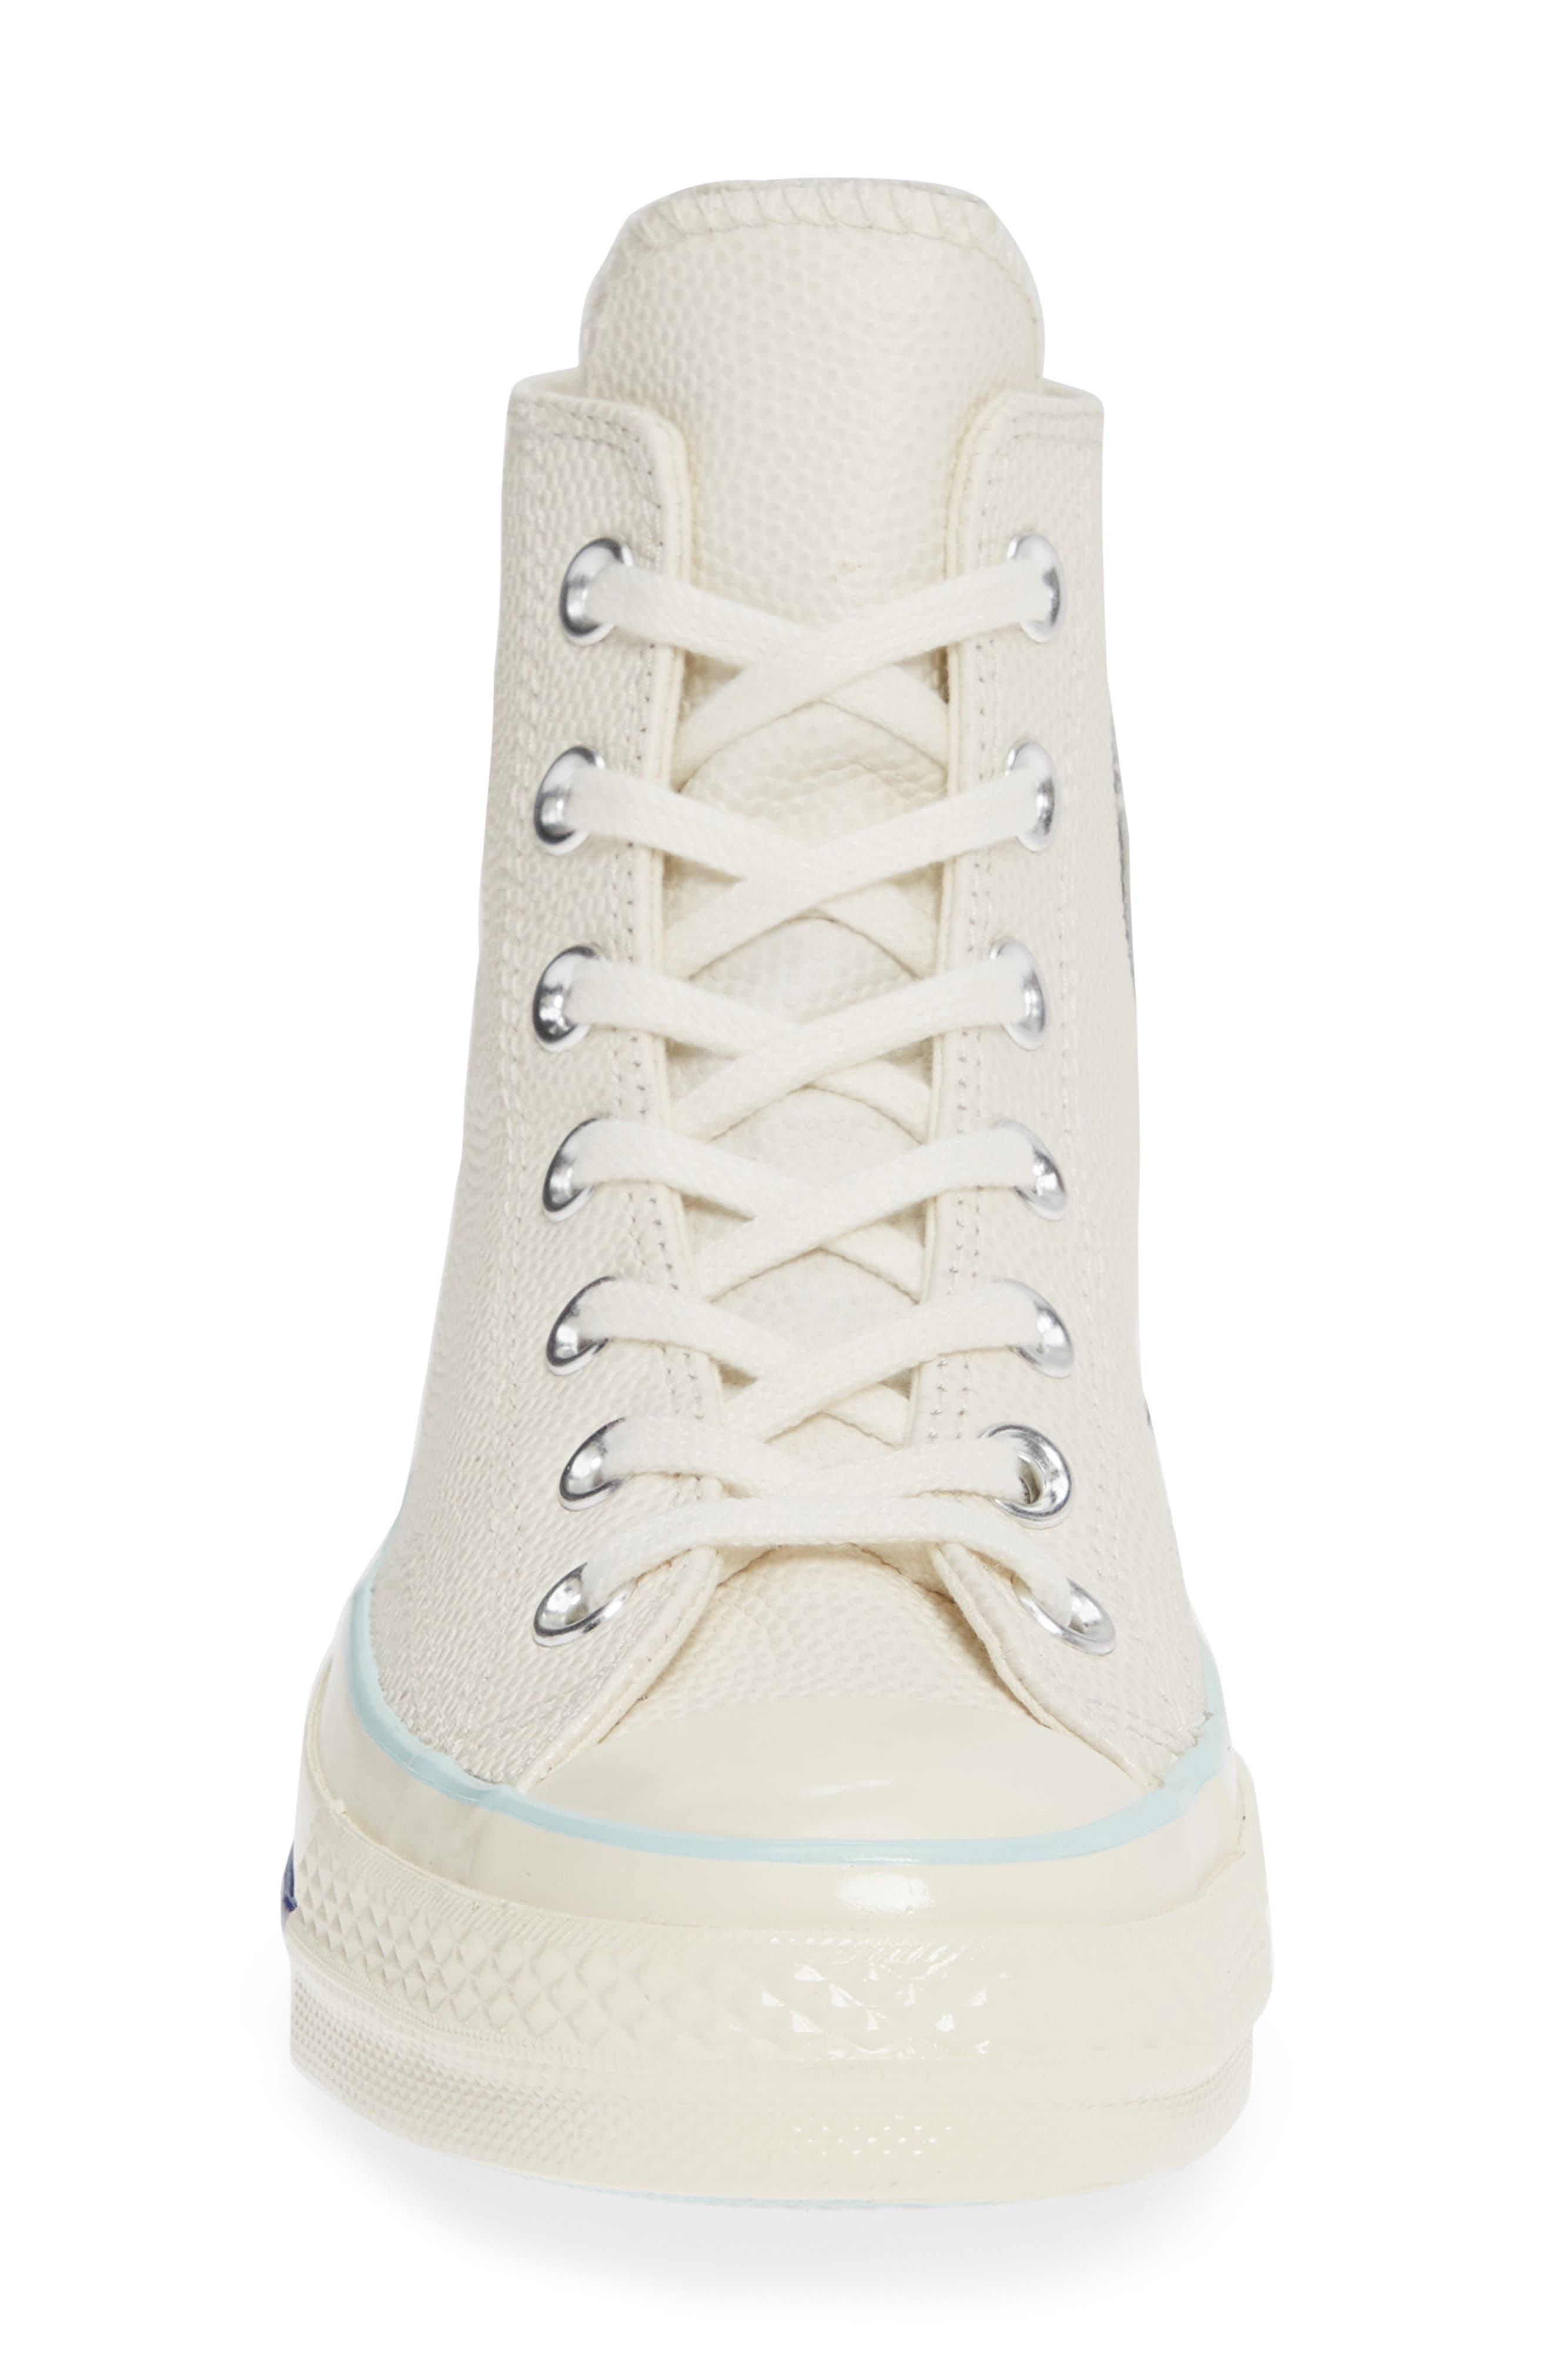 CONVERSE, Chuck Taylor<sup>®</sup> All Star<sup>®</sup> 70 High Top Leather Sneaker, Alternate thumbnail 4, color, EGRET/ TEAL TINT/ EGRET